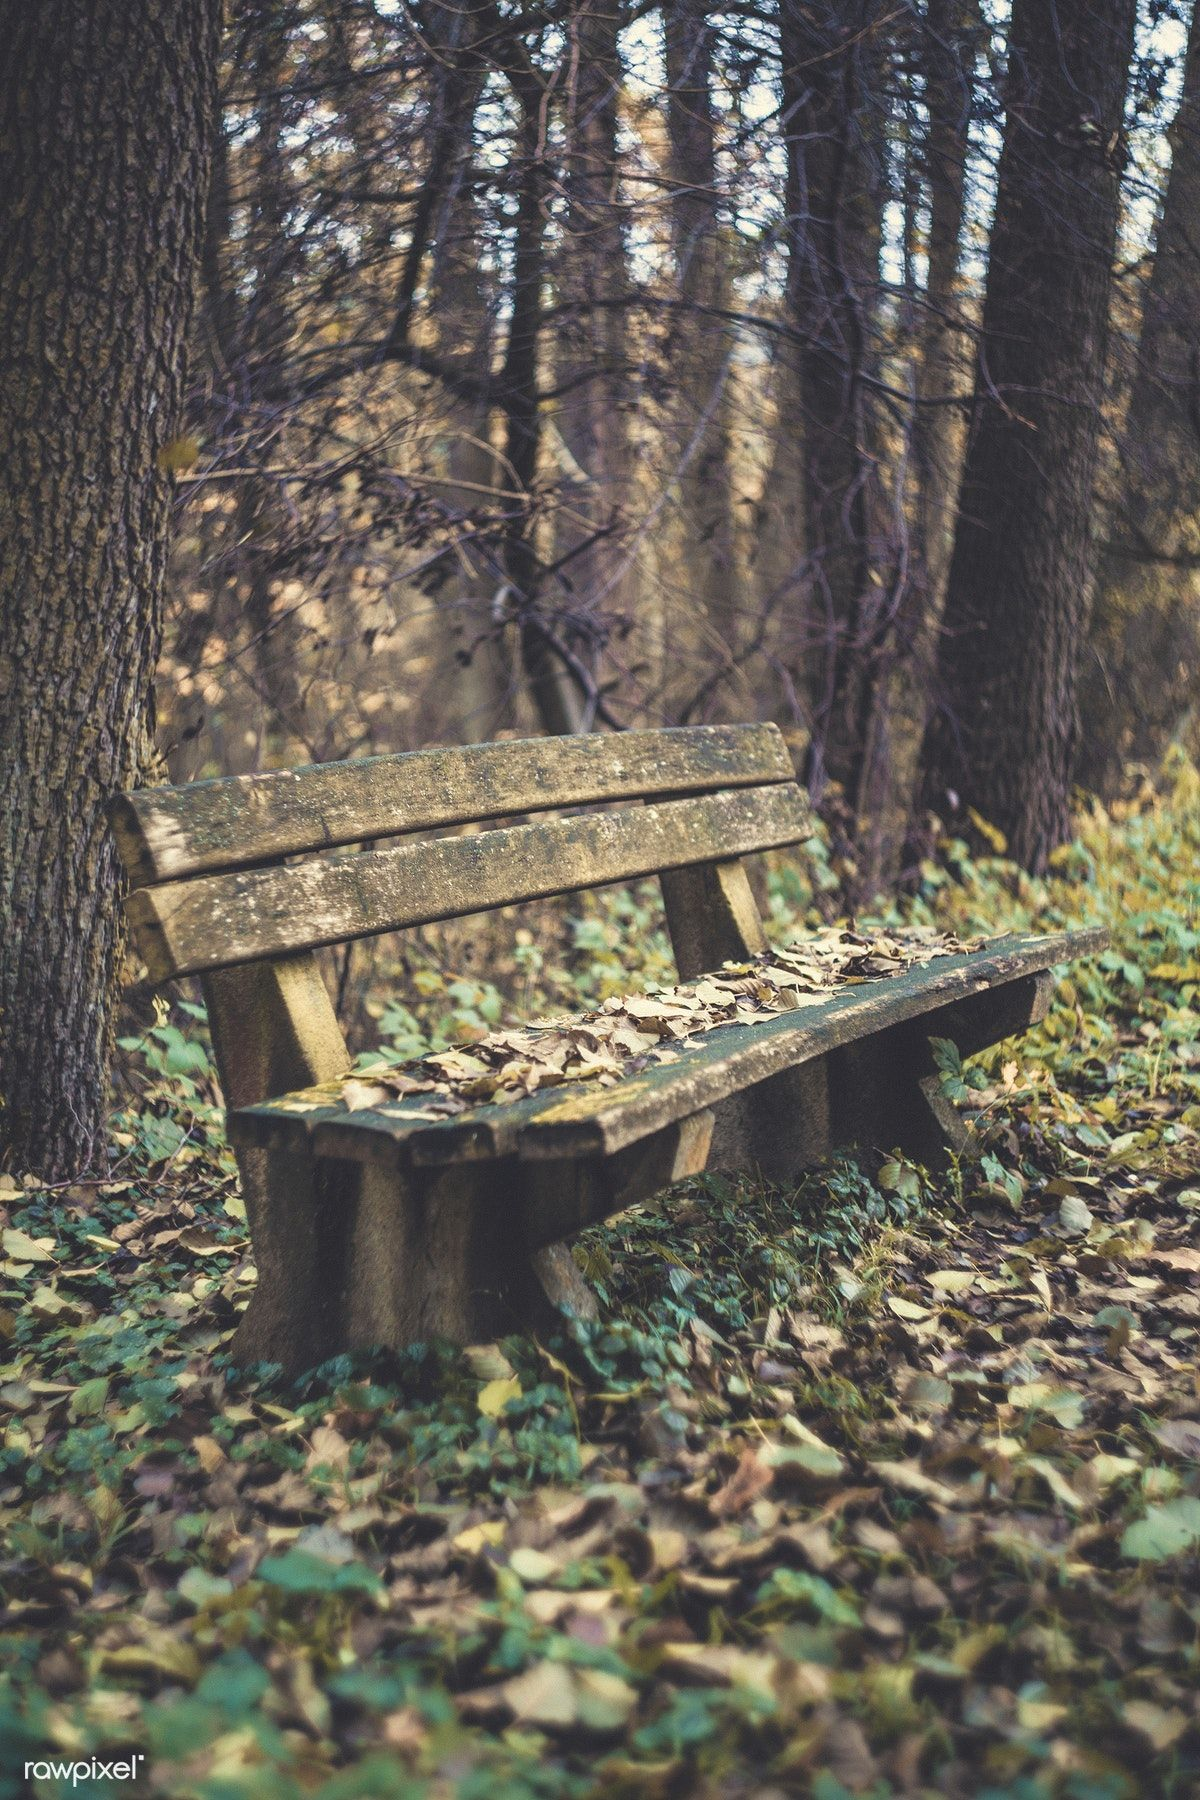 Wooden Bench In A Wood - Free Image By Rawpixelcom